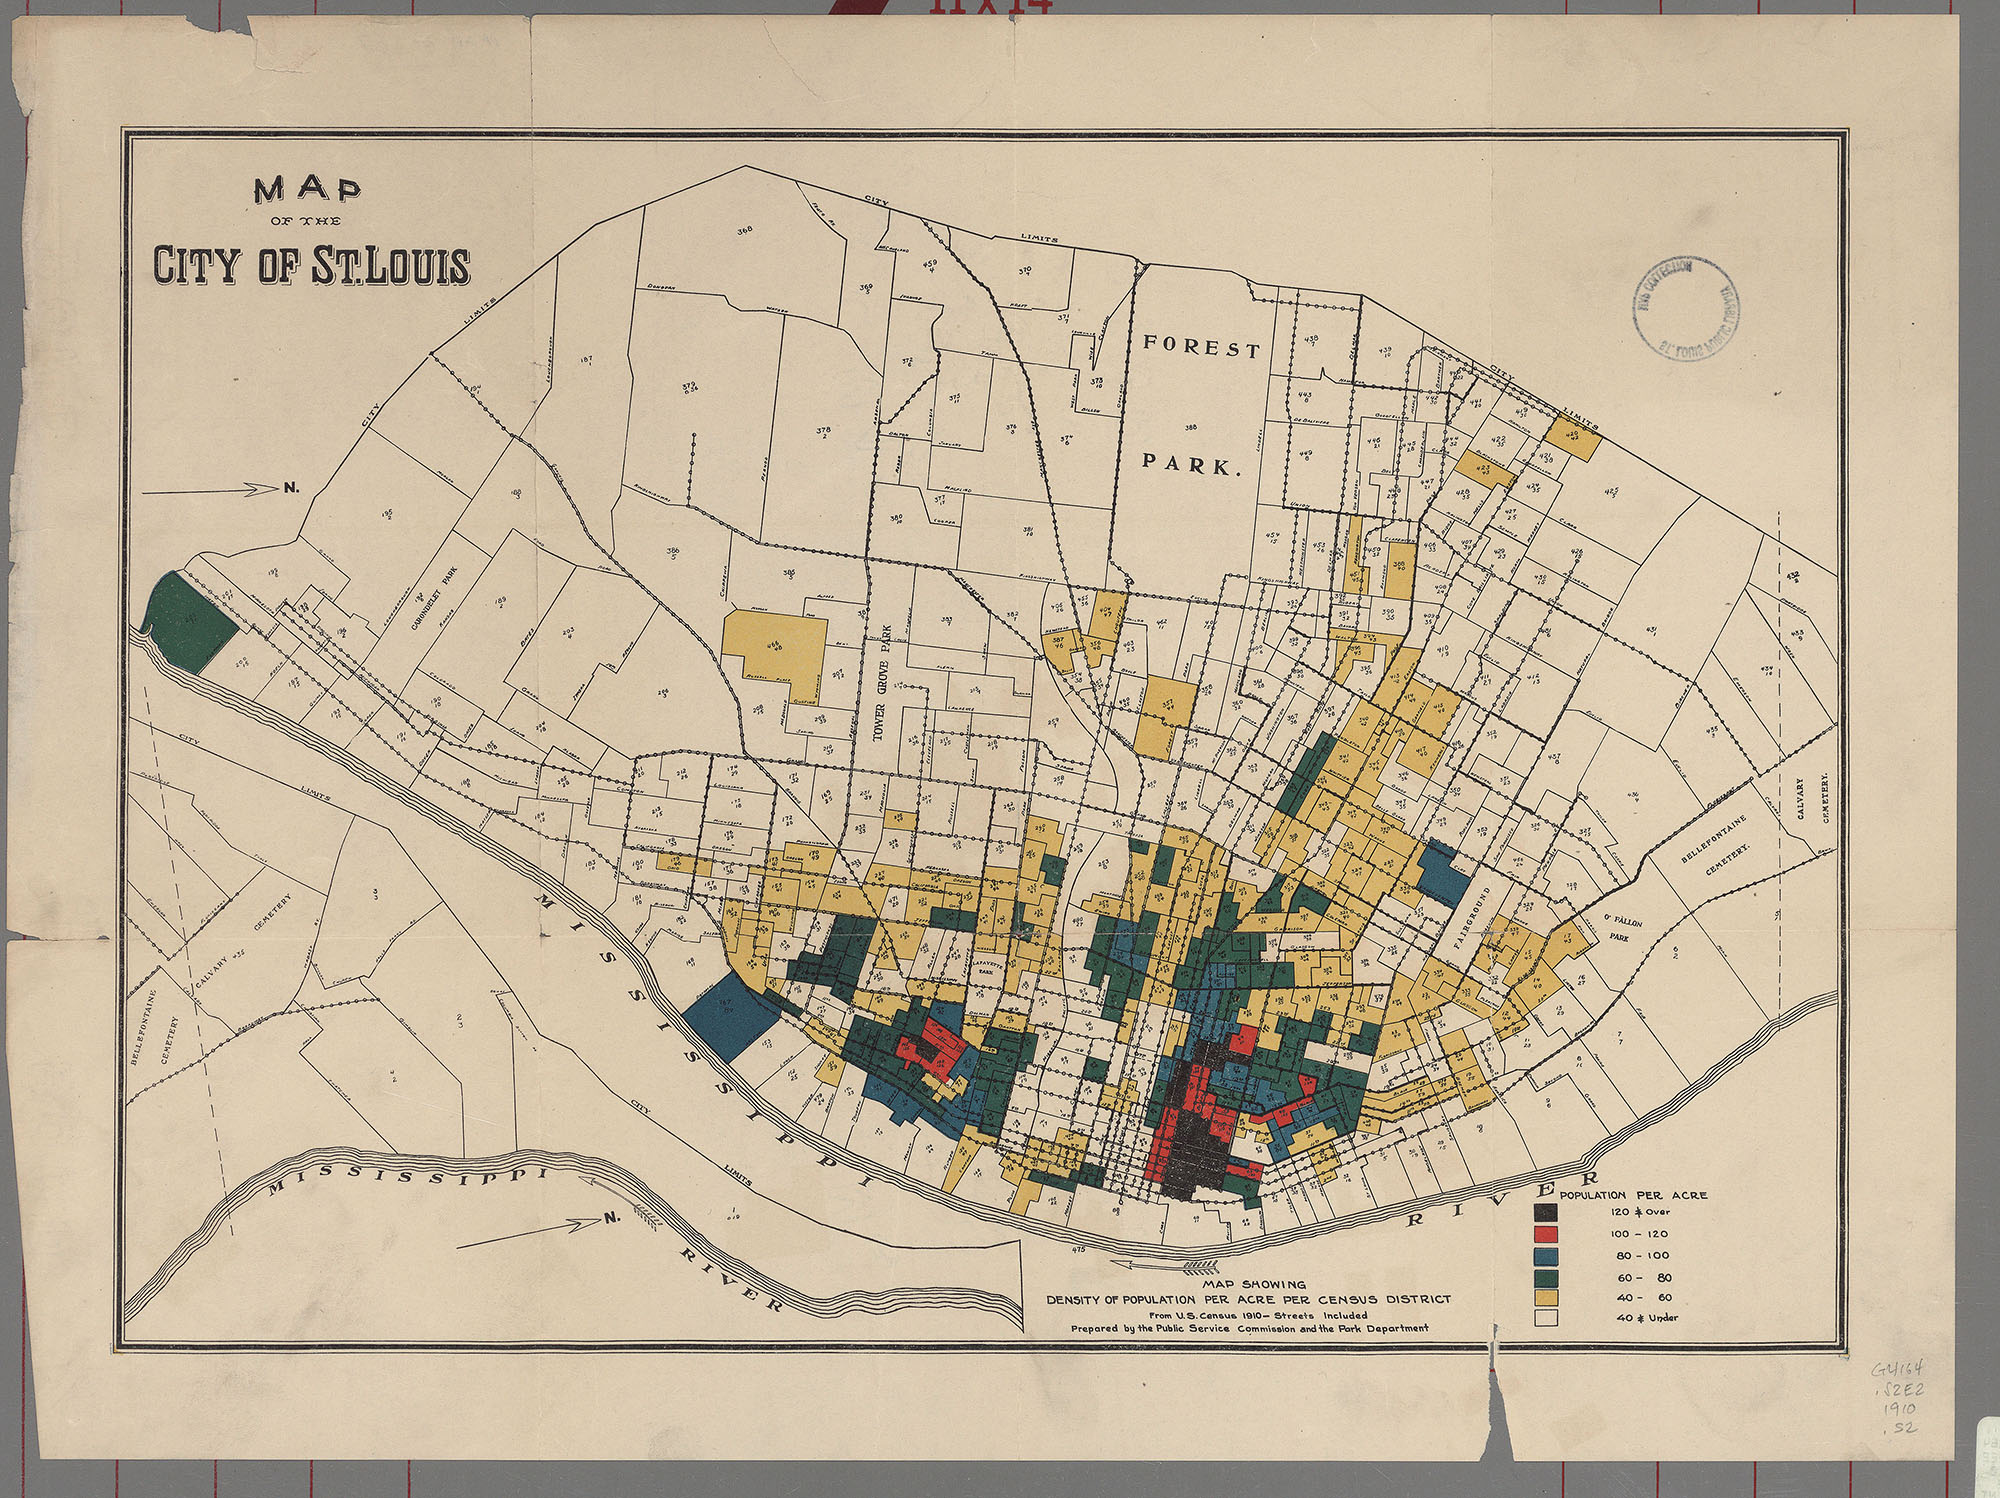 Description Map Showing Density Of Population Per Acre Per Census District From U S Census 1910 Streets Included